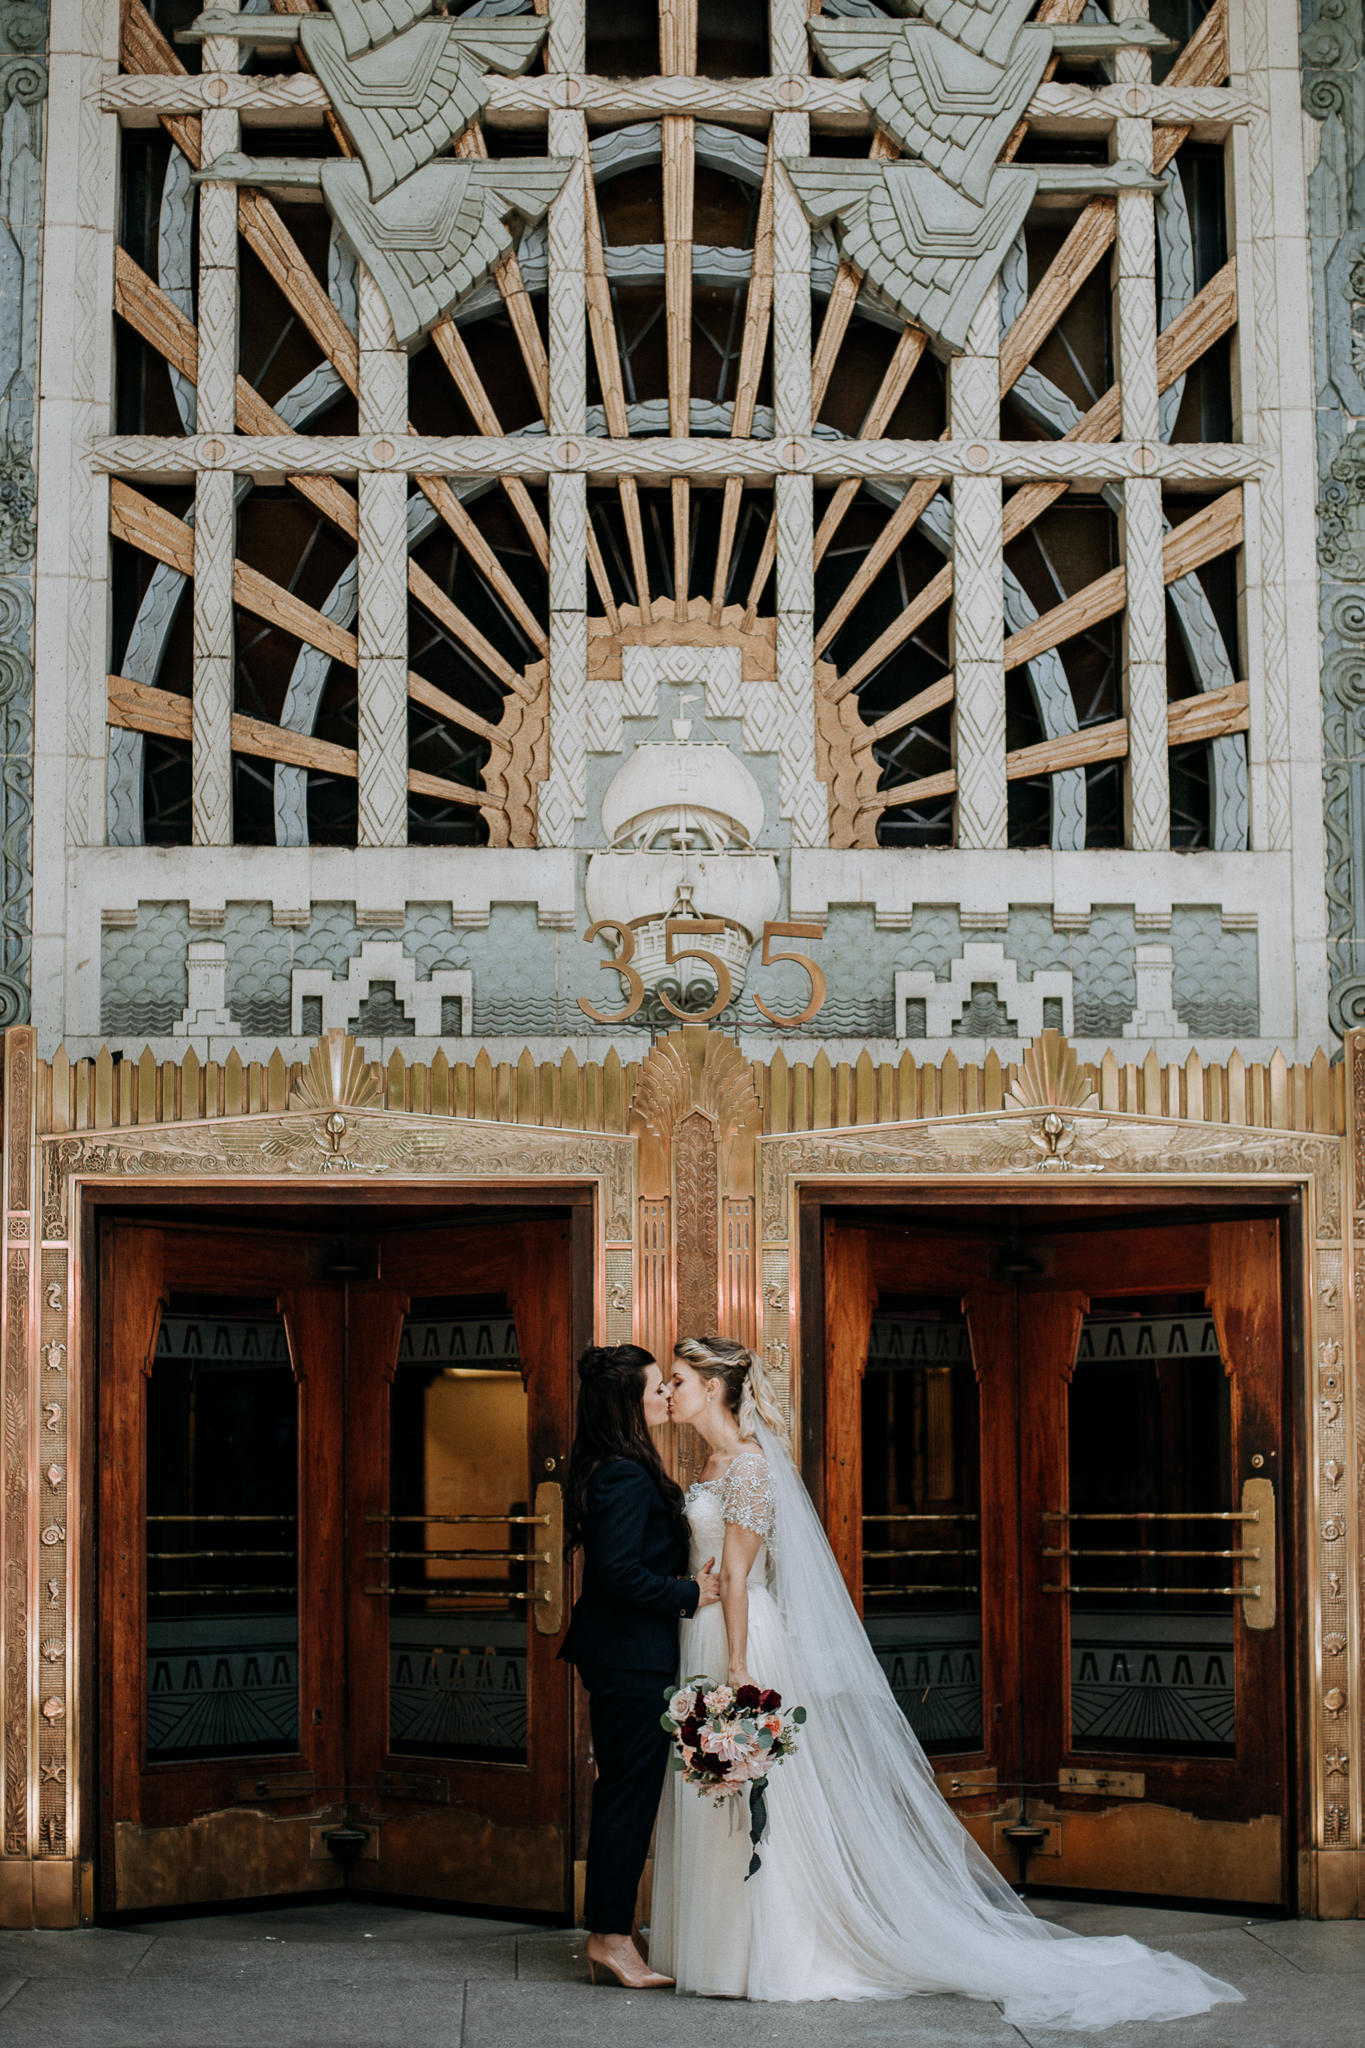 82-vintage-vancouver-gastown-same-sex-wedding-the-permanent-ellesarah-sara-rogers-photography-5542.jpg